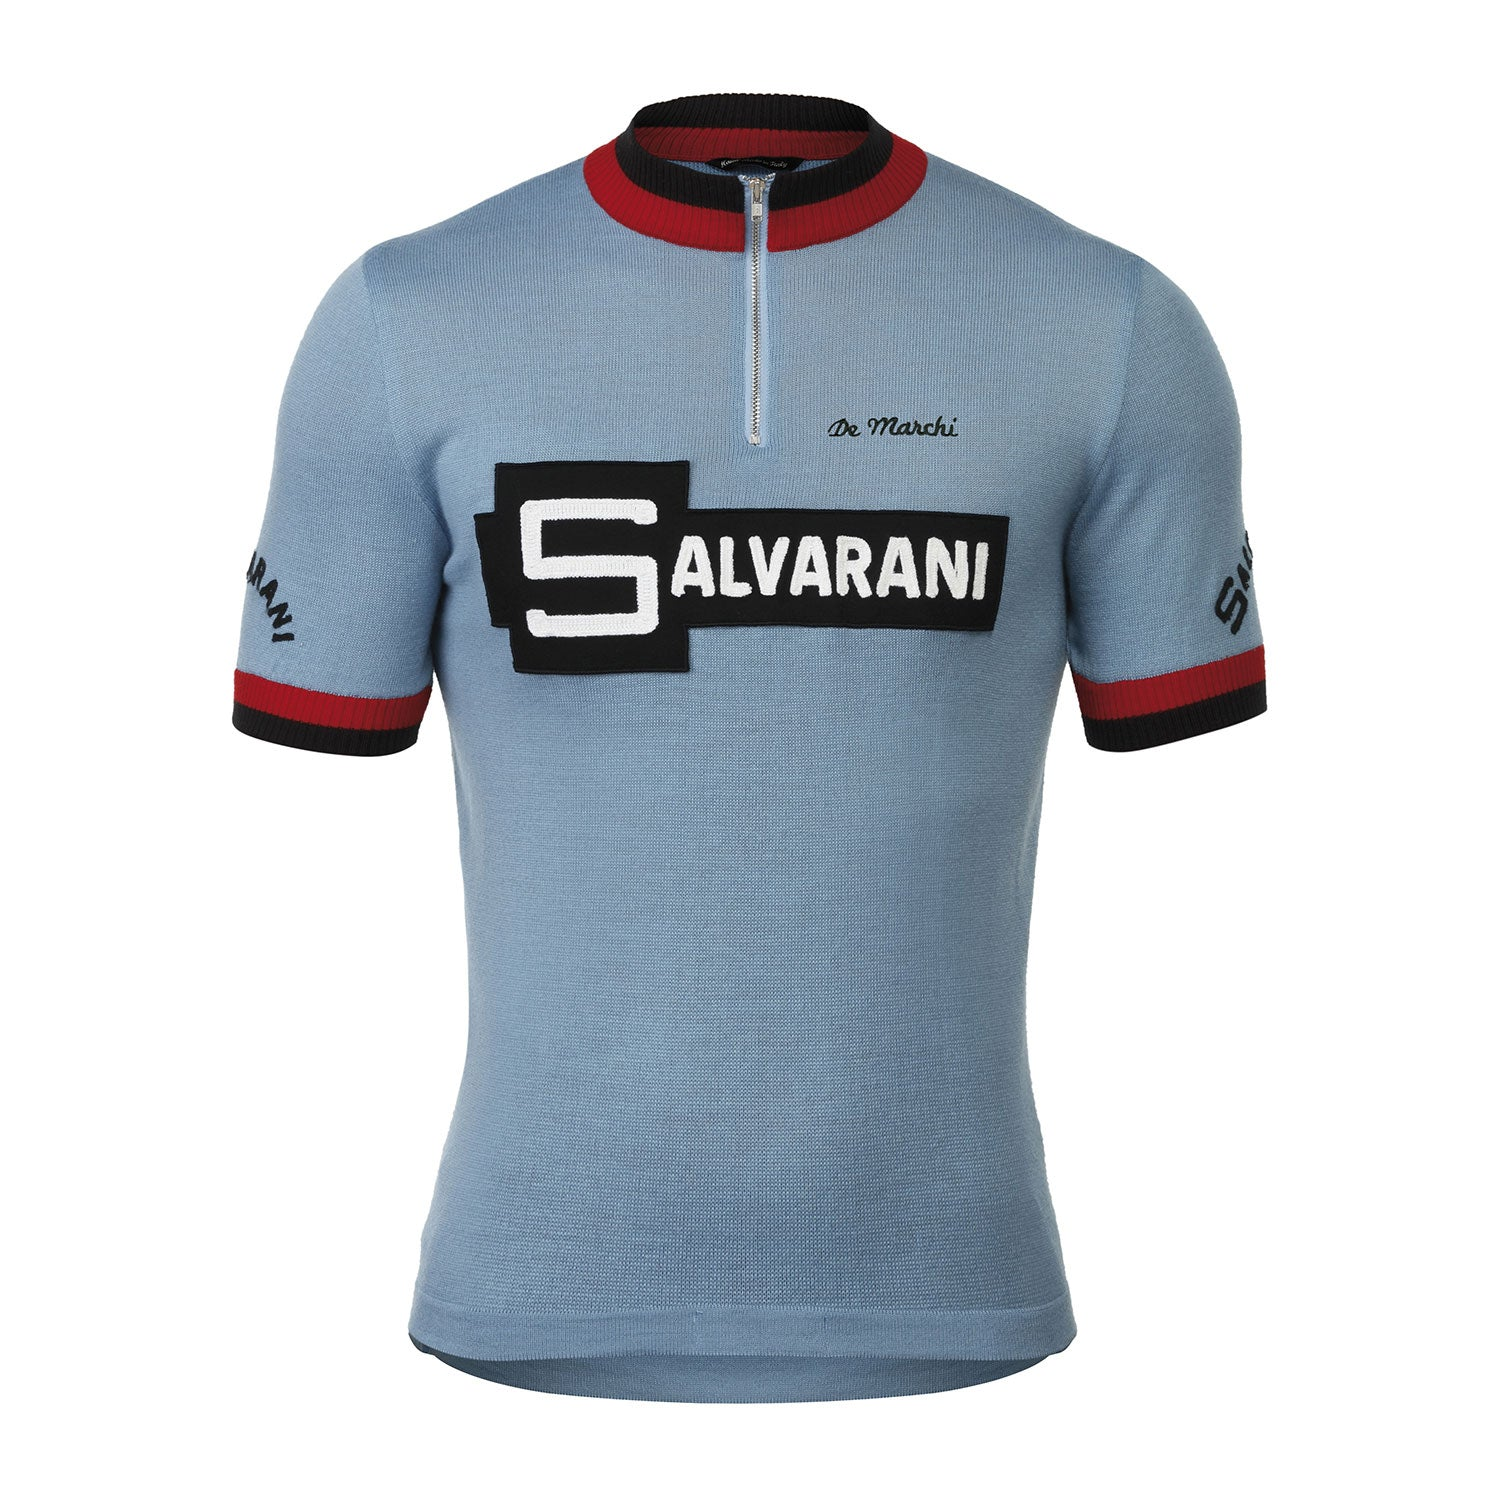 8a343e705 All of the products for sale online at Prendas Ciclismo Tagged ...